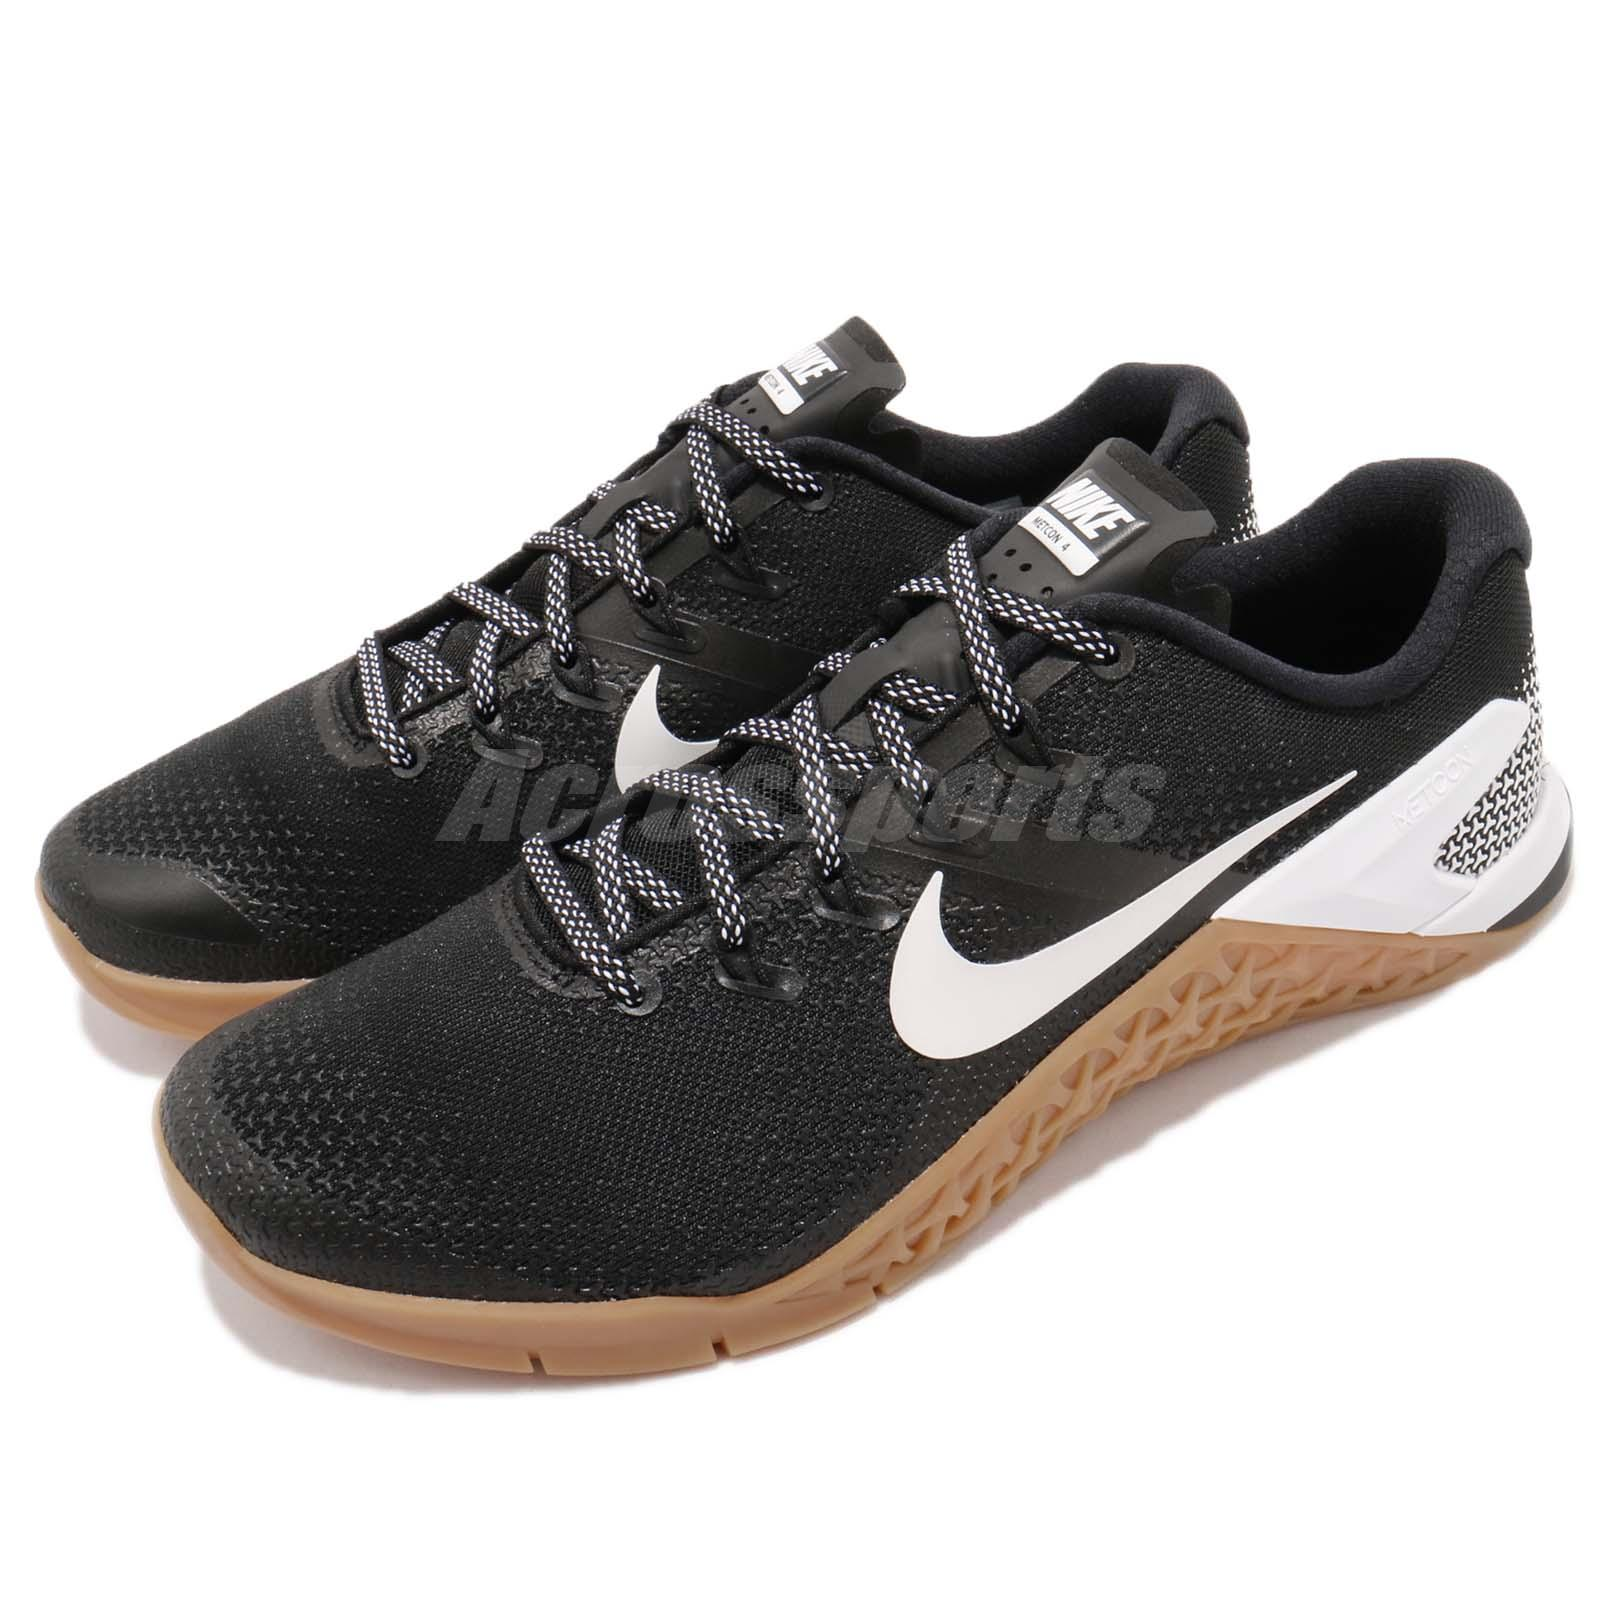 ec6b0be0d1b269 Details about Nike Metcon 4 IV Black White Gum Men Cross Training Shoes  Sneakers AH7453-006